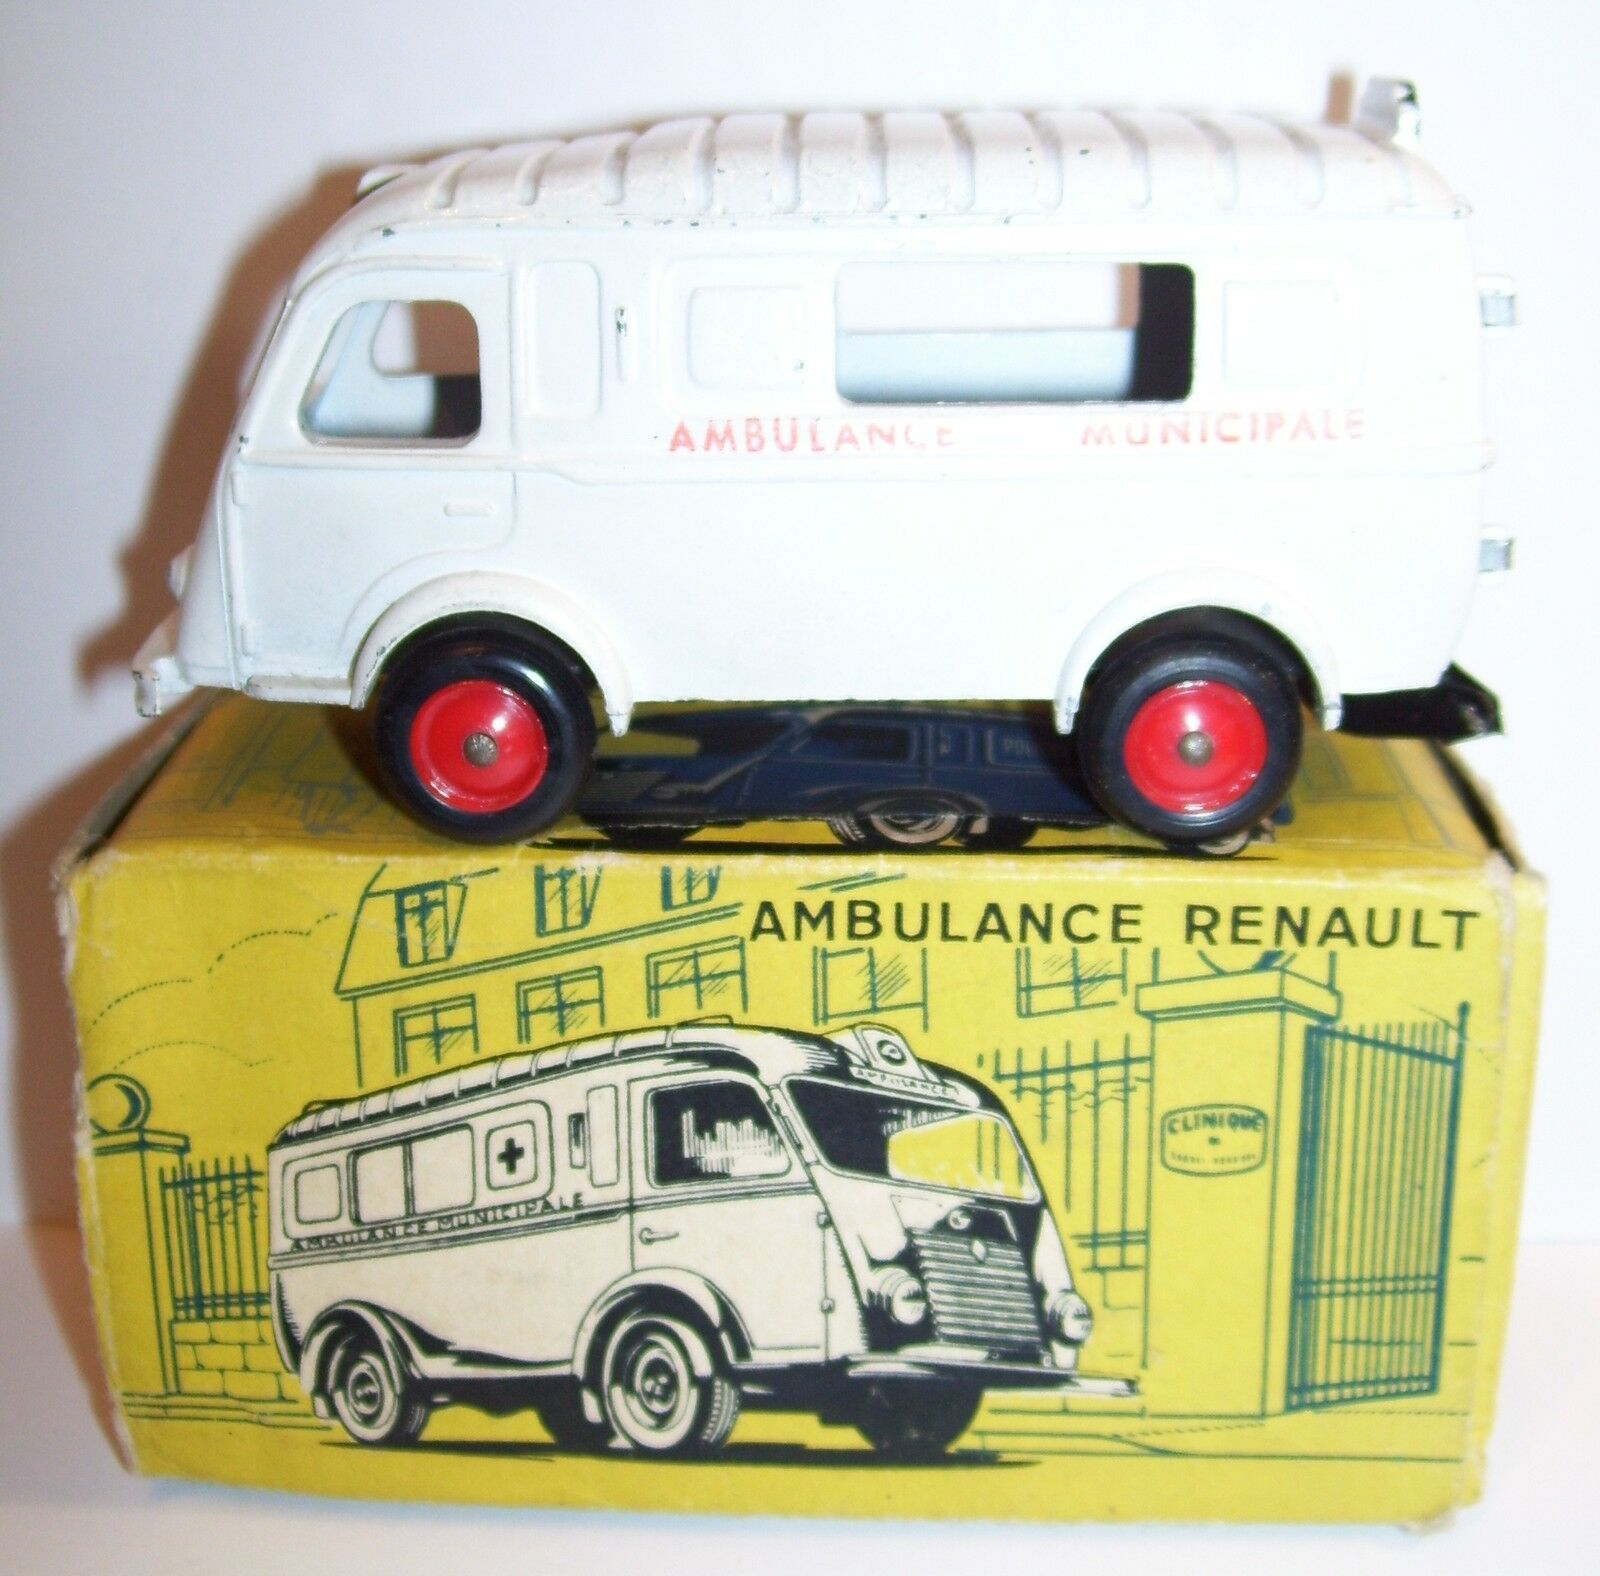 ORIGINAL OLD CIJ RENAULT 1000 kg Ambulanz kommunale ref 3-61 1955 IN BOX 1 45